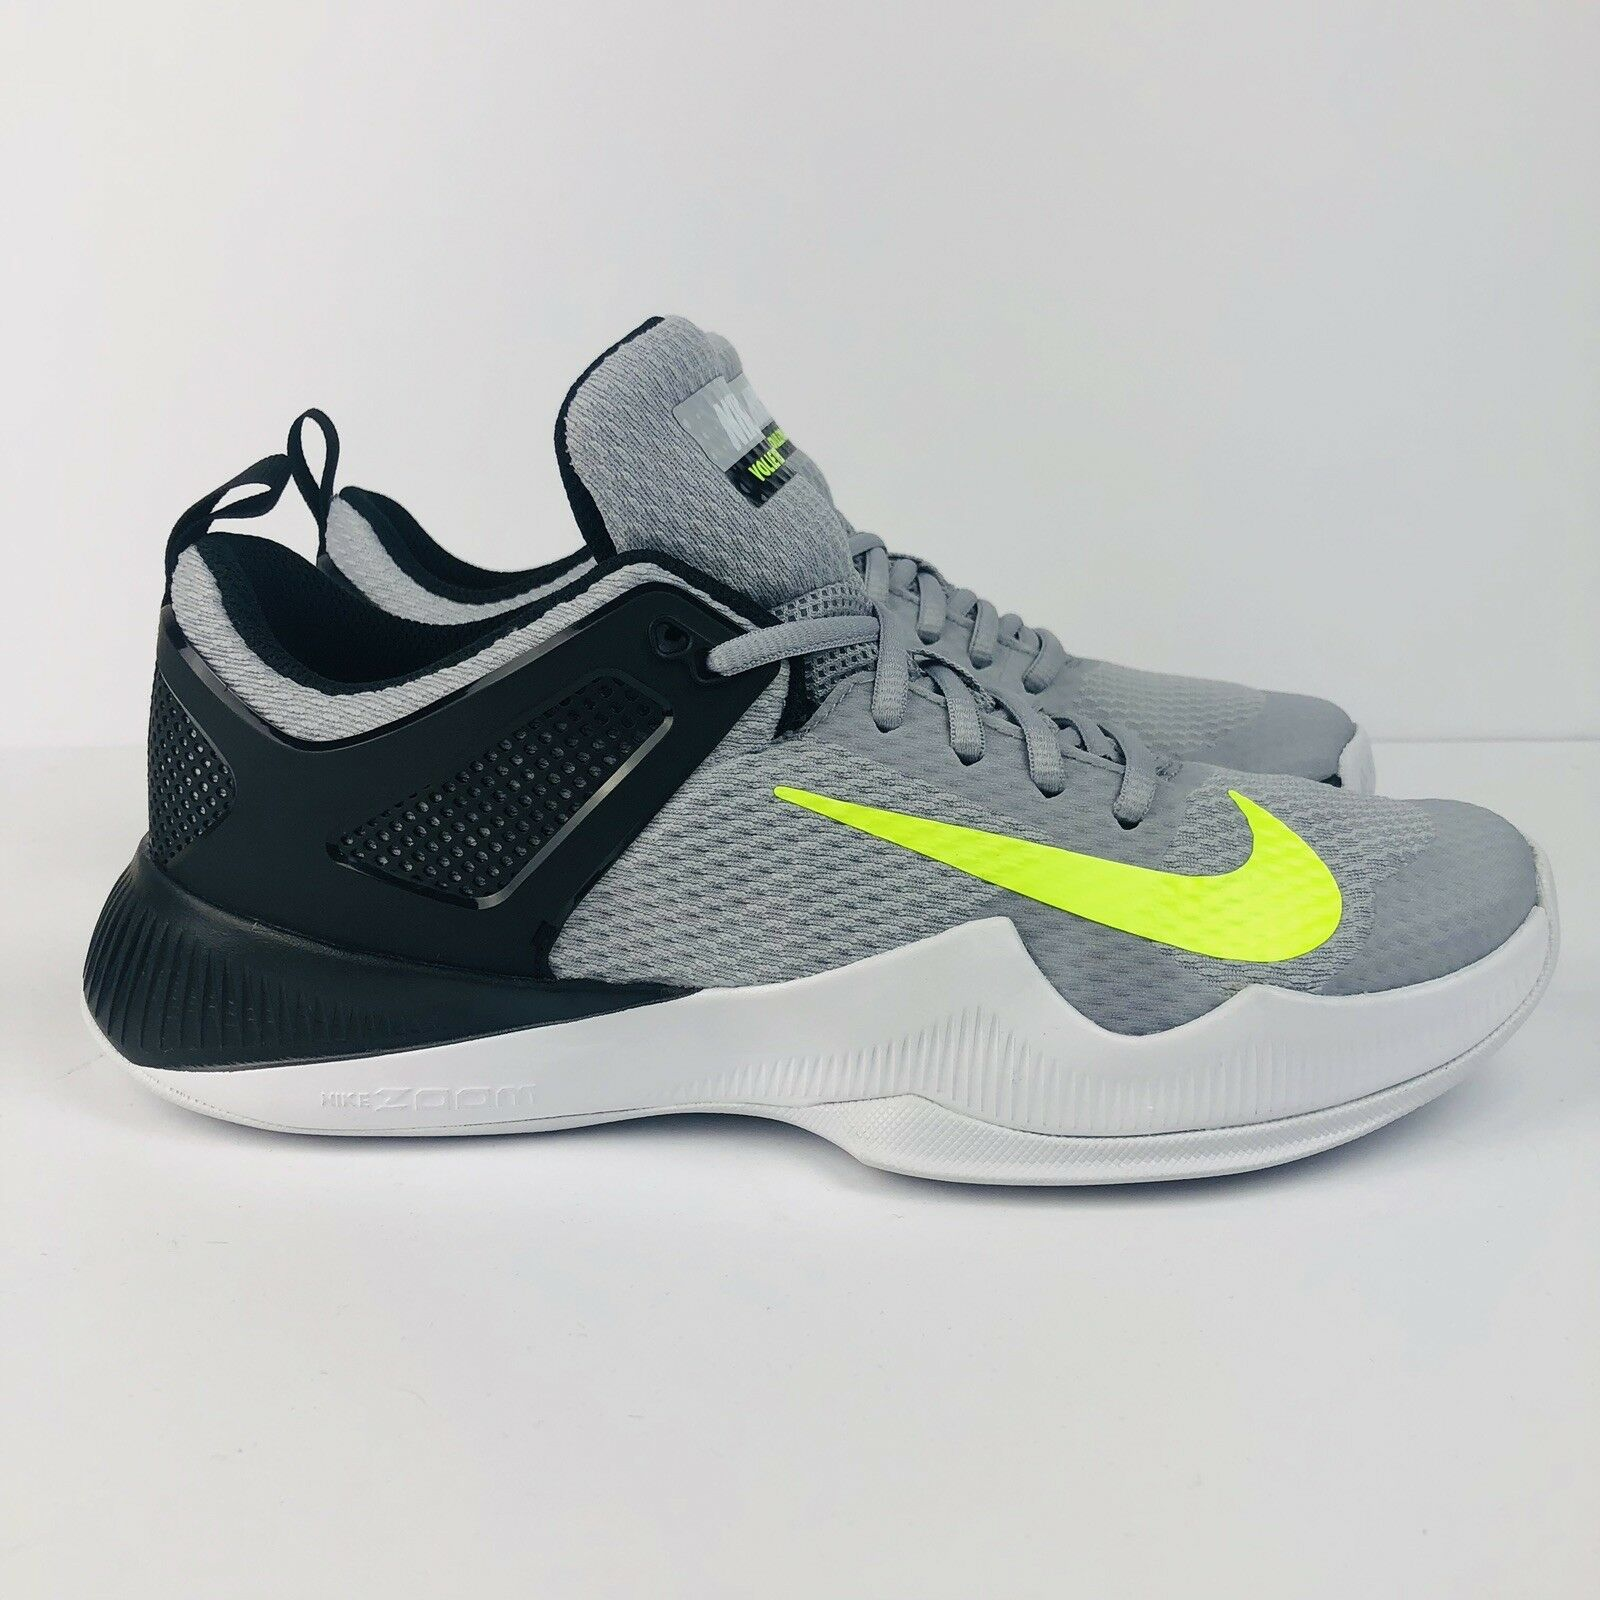 Nike Womens Air Zoom Hyperace Volleyball shoes 902367-007 Various Wolf Grey